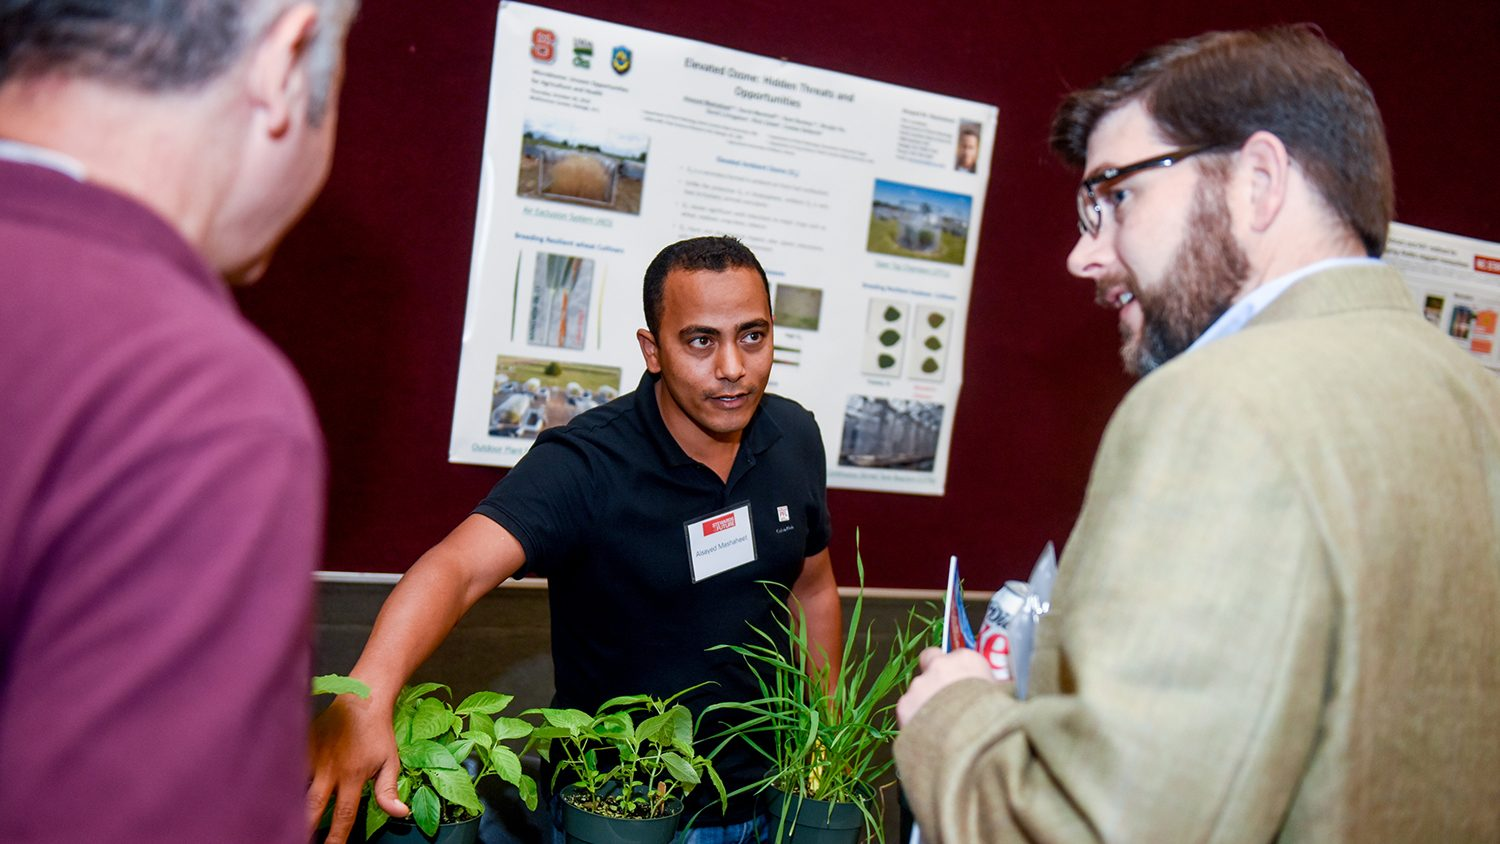 Researcher sharing his work at a conference.